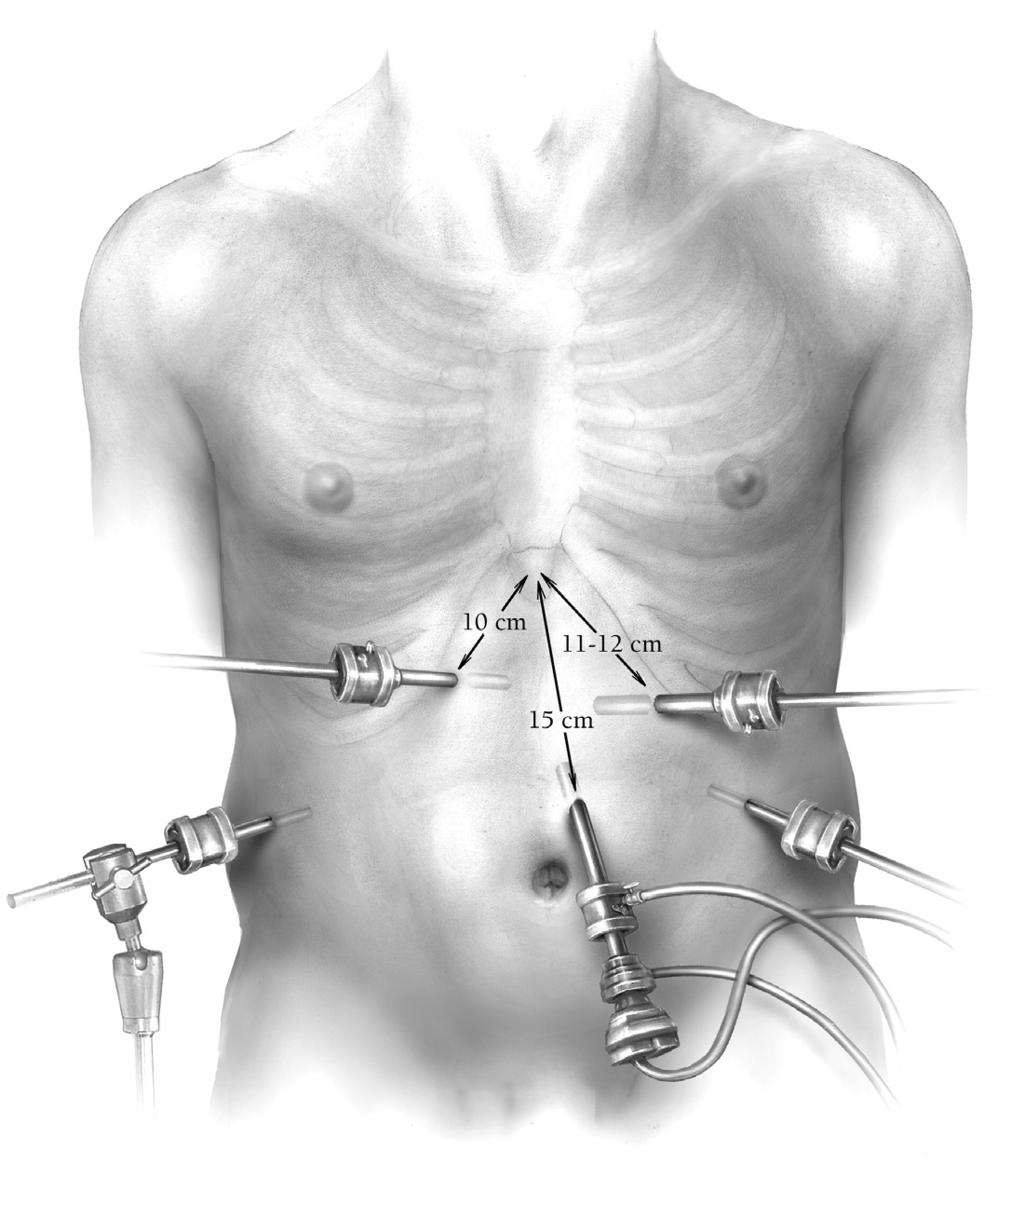 Laparoscopic Nissen fundoplication 219 Operative Technique Figure 1 A five-port (two 10-mm ports and three 5-mm ports) technique is used.